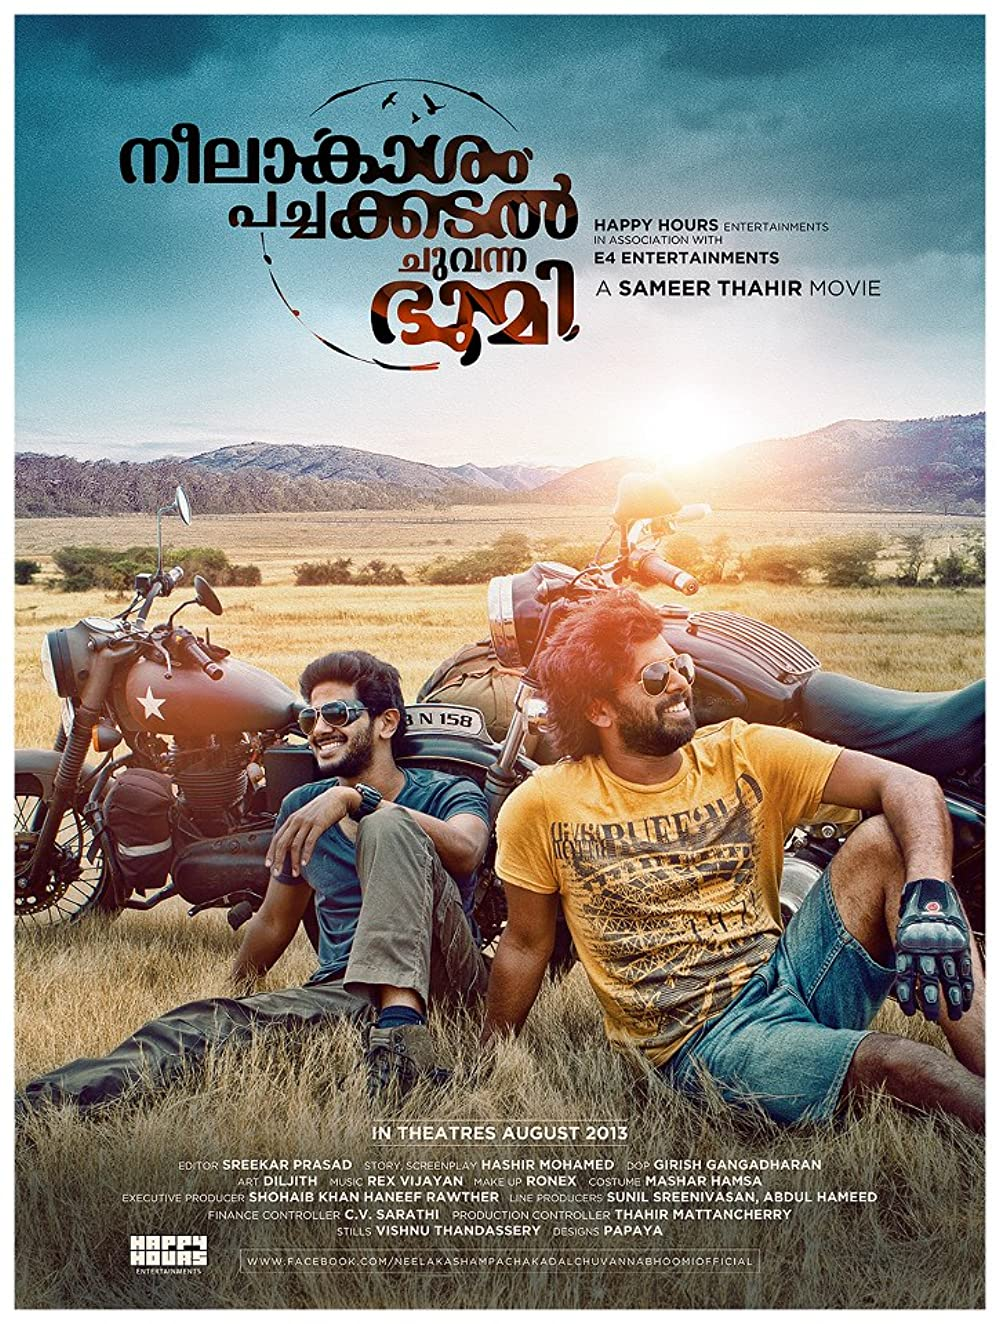 Neelakasham Pachakadal Chuvanna Bhoomi 2013 Hindi Dubbed 720p HDRip ESubs 1.4GB Download